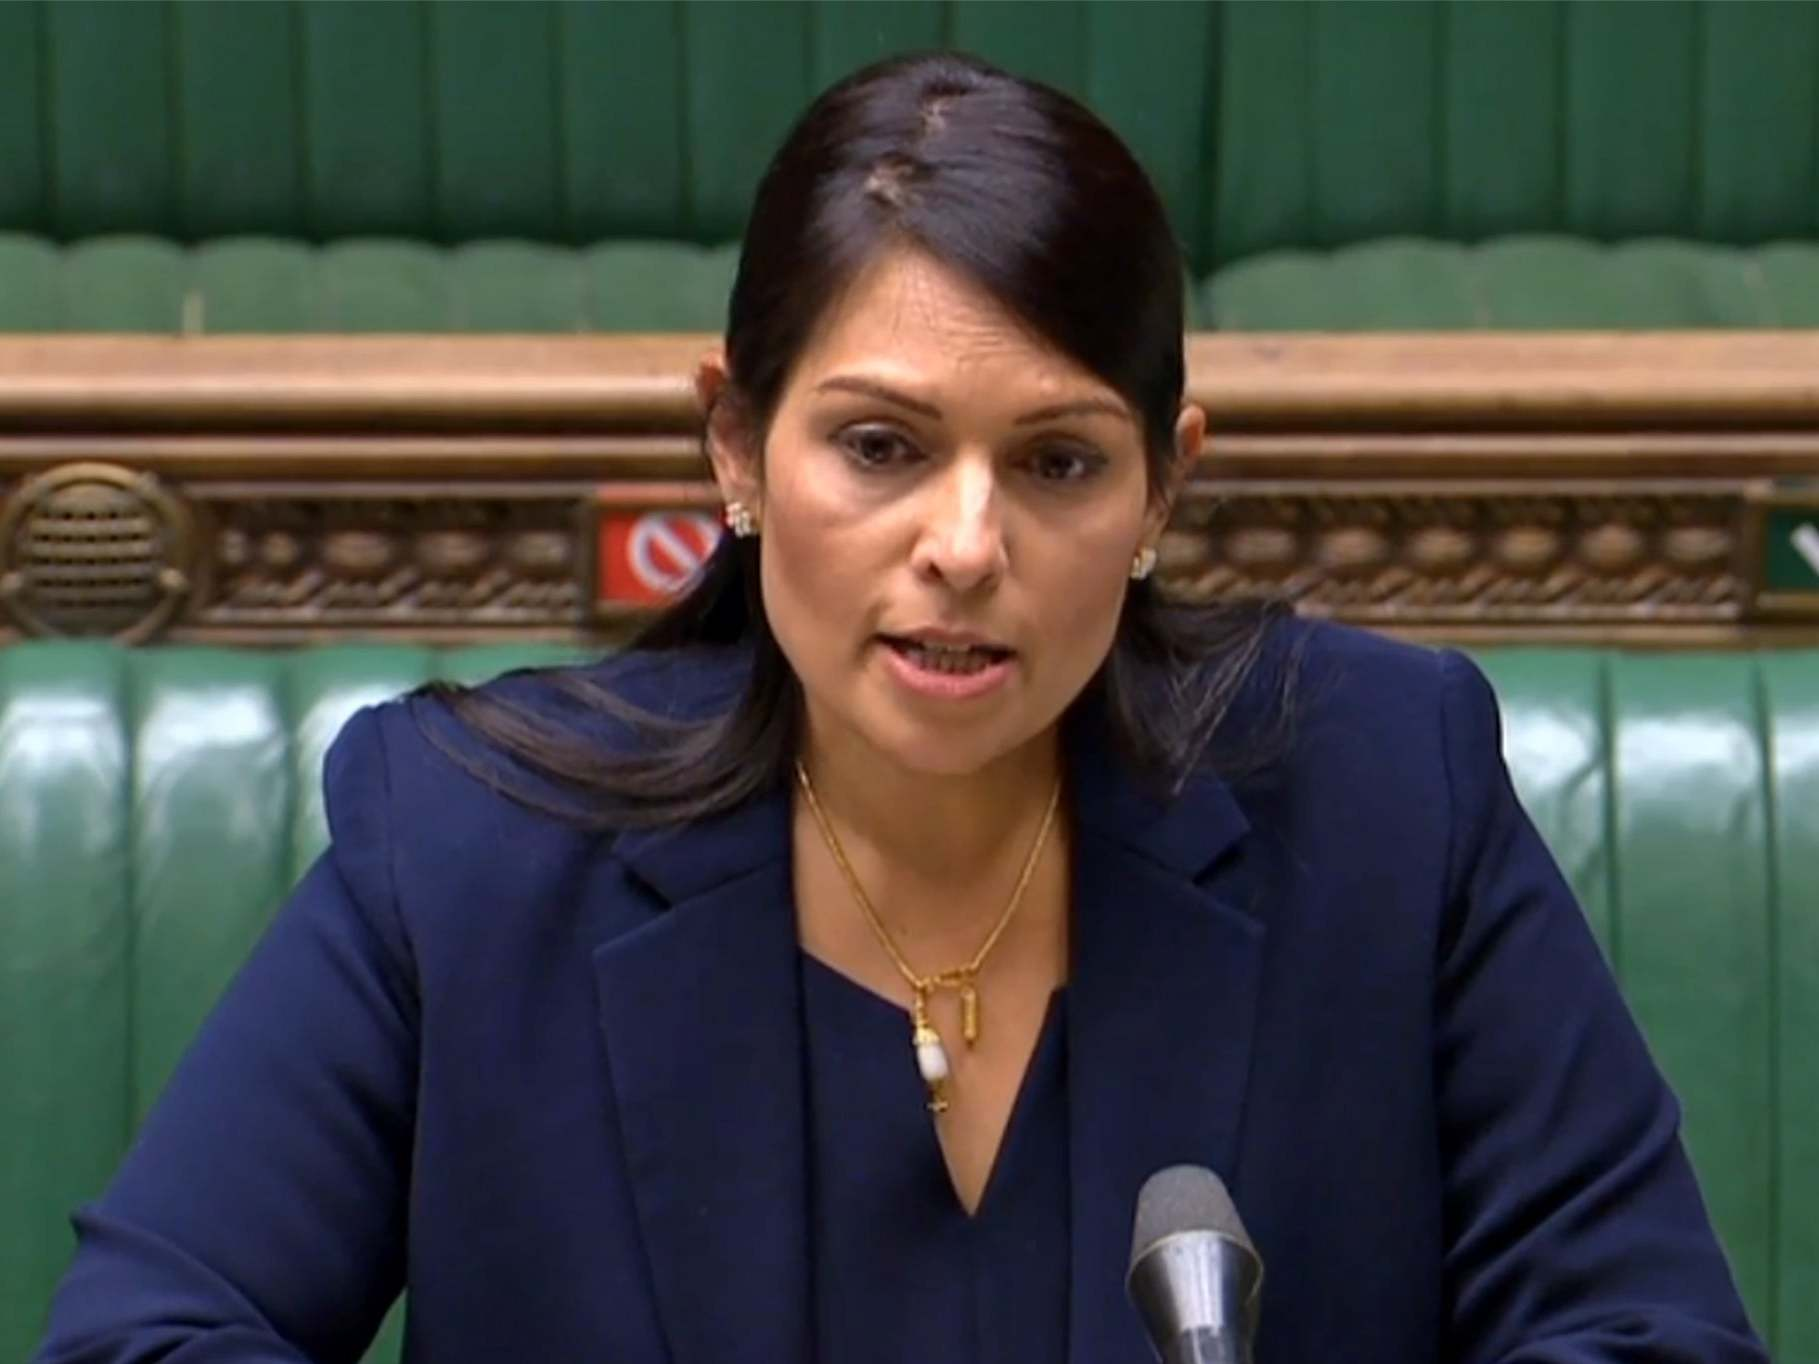 Was this Priti Patel's finest hour? | The Independent